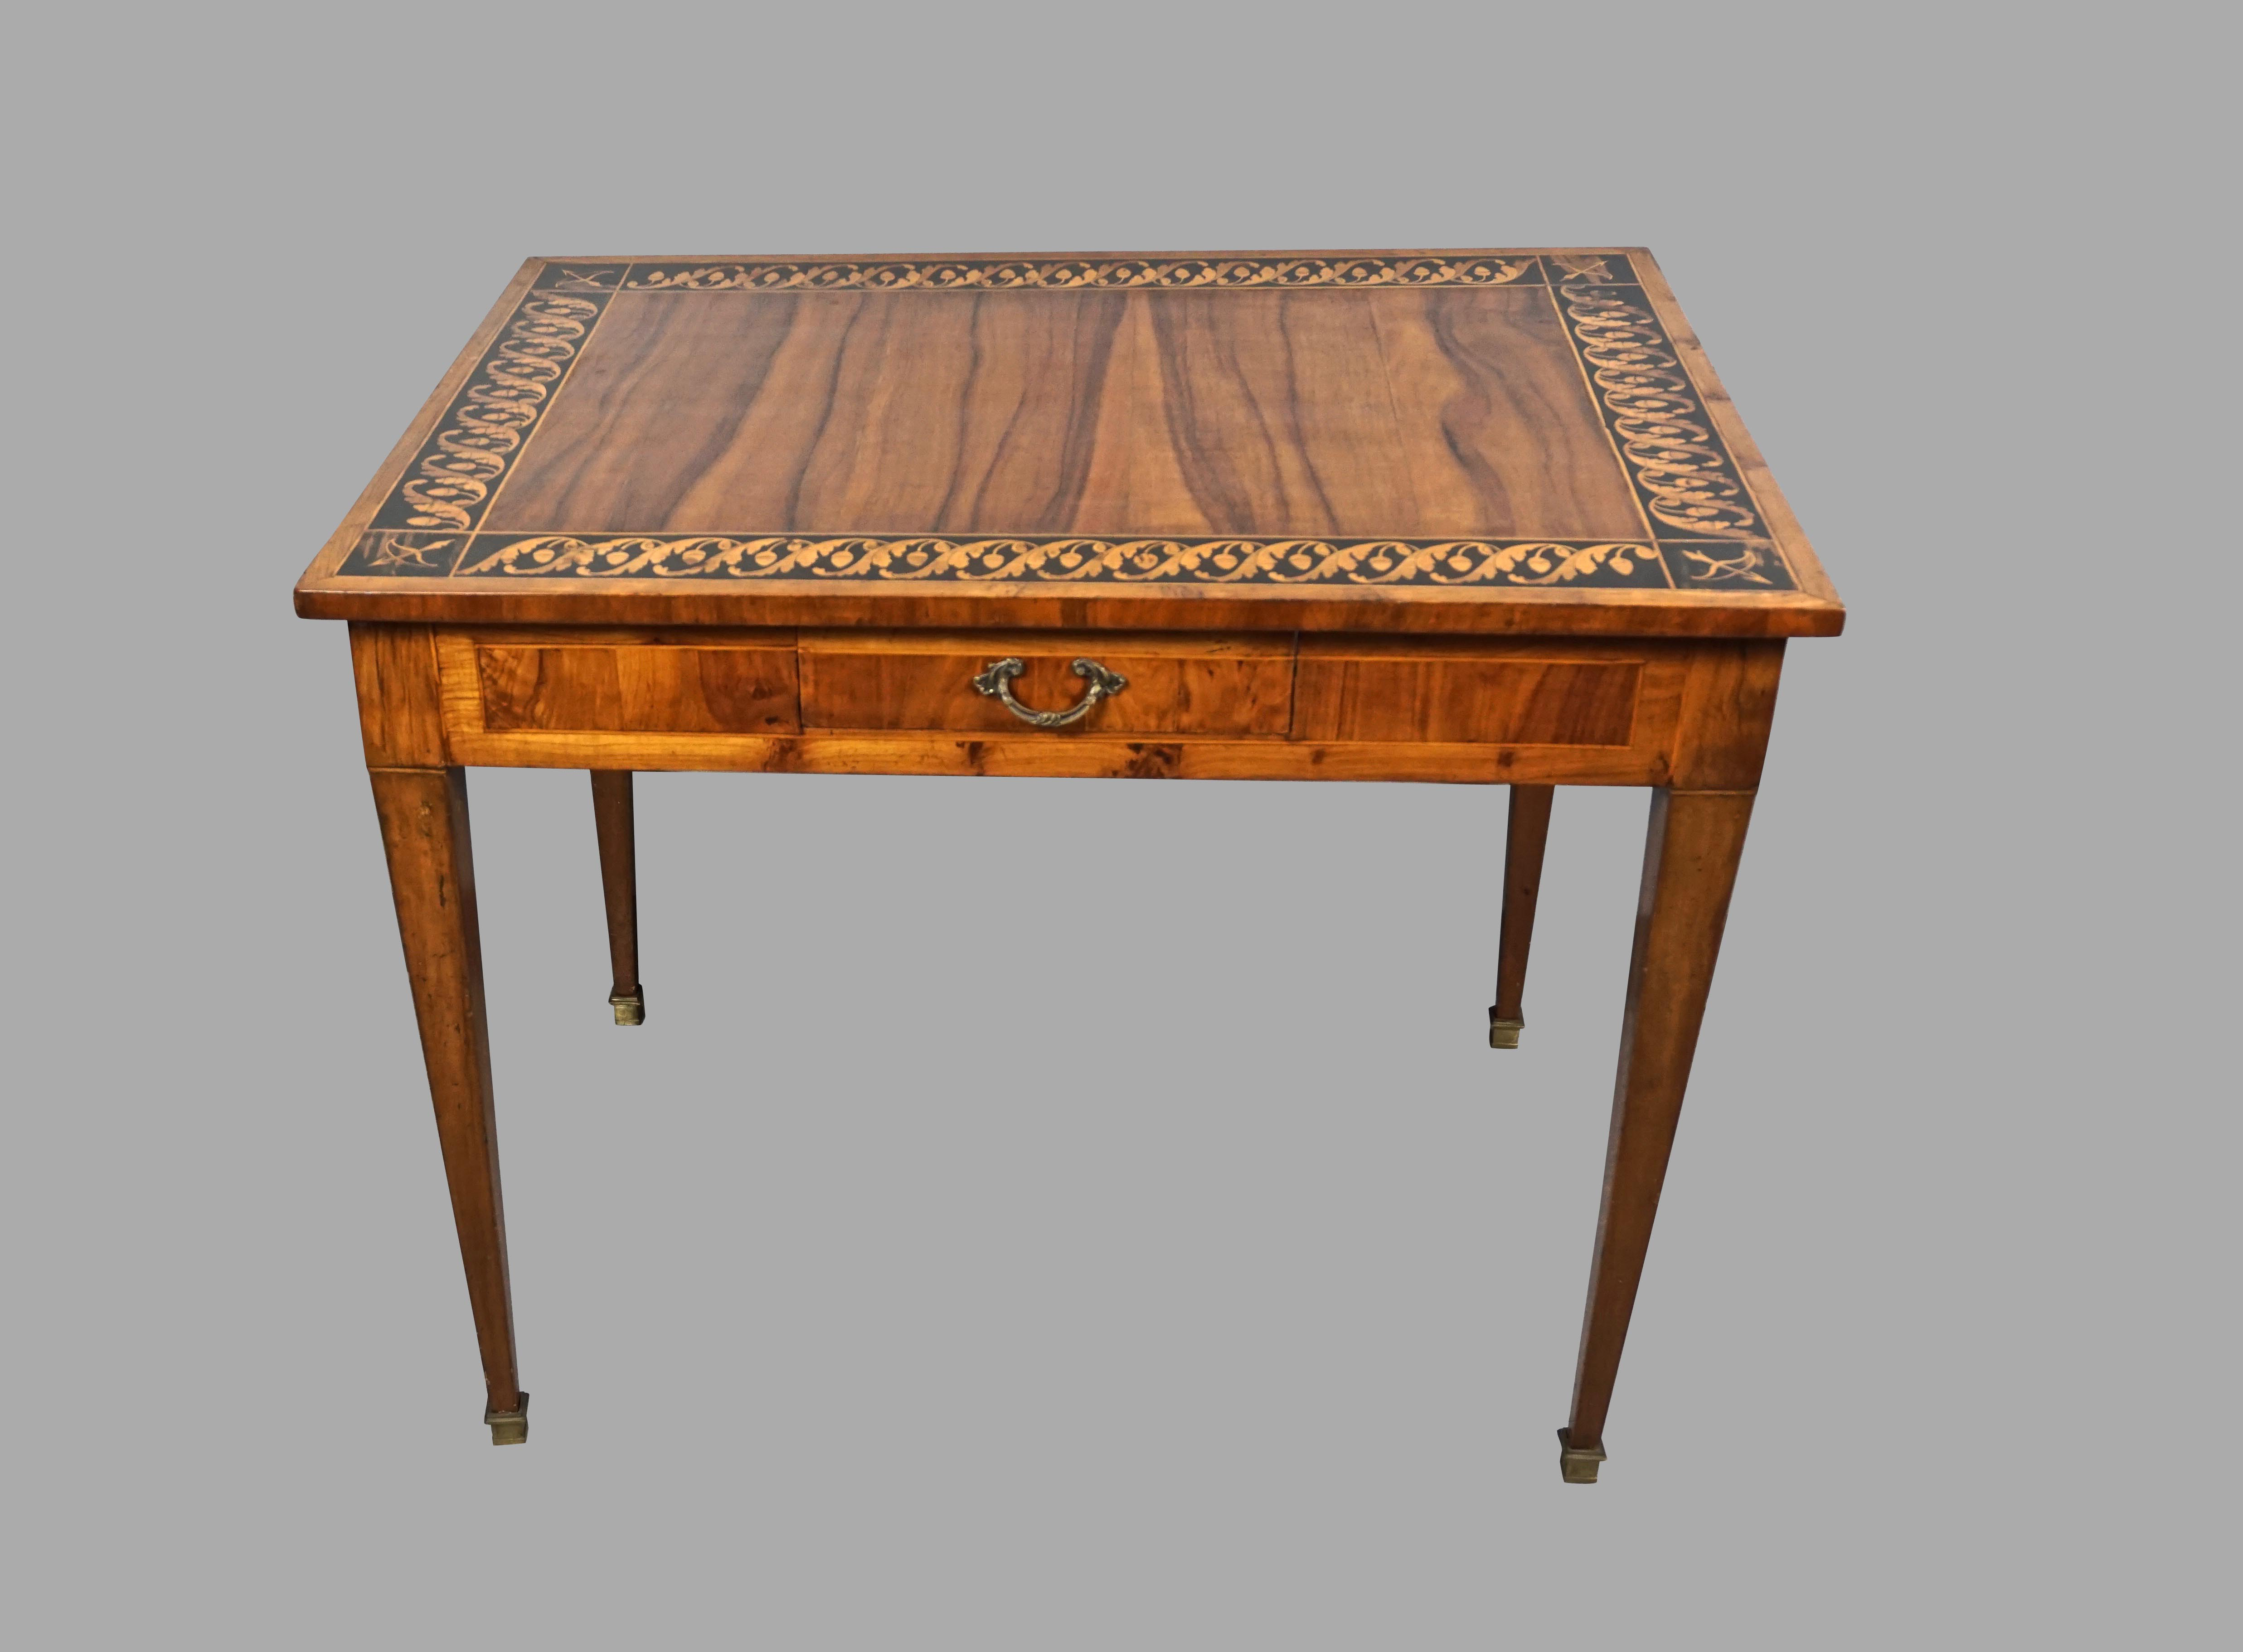 Italian Neoclassical Inlaid Walnut Table with Drawer | DANIEL STEIN Antiques San Francisco CA